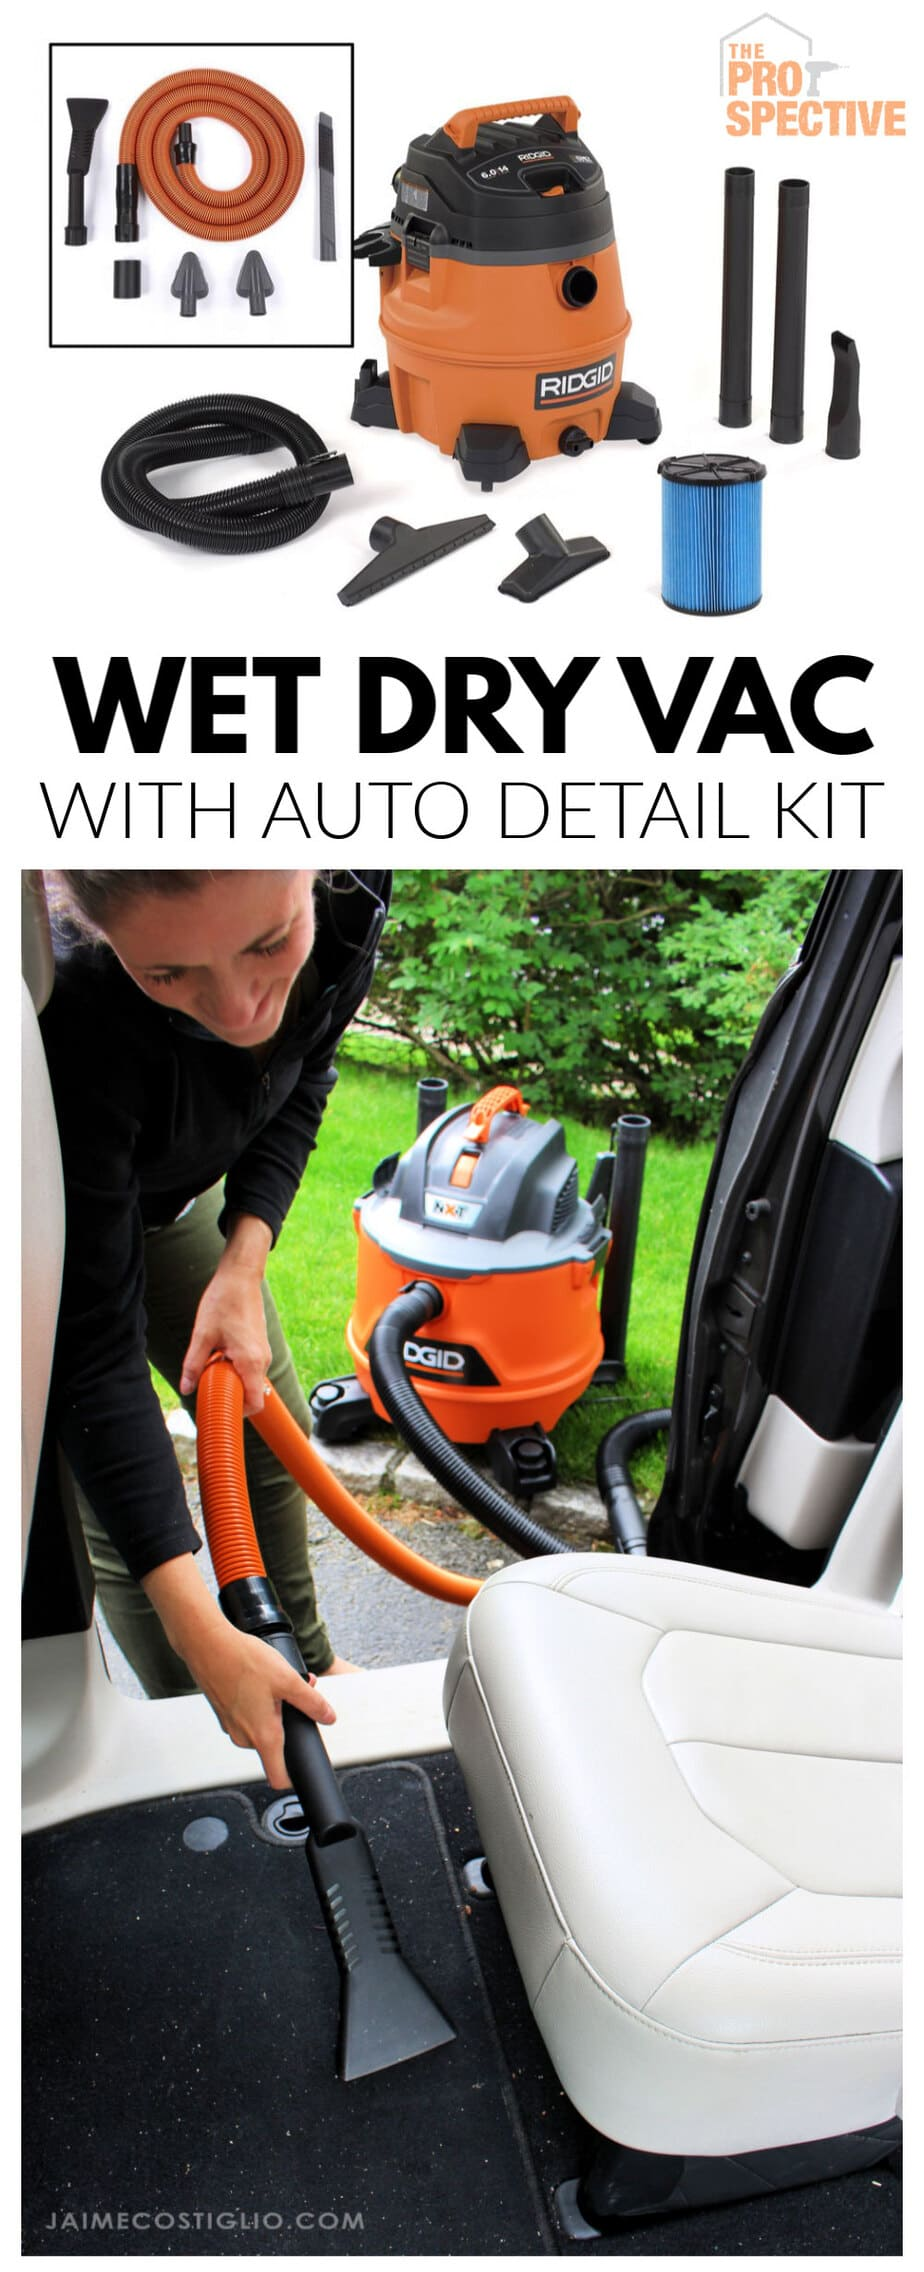 ridgid wet dry vac with auto detail kit